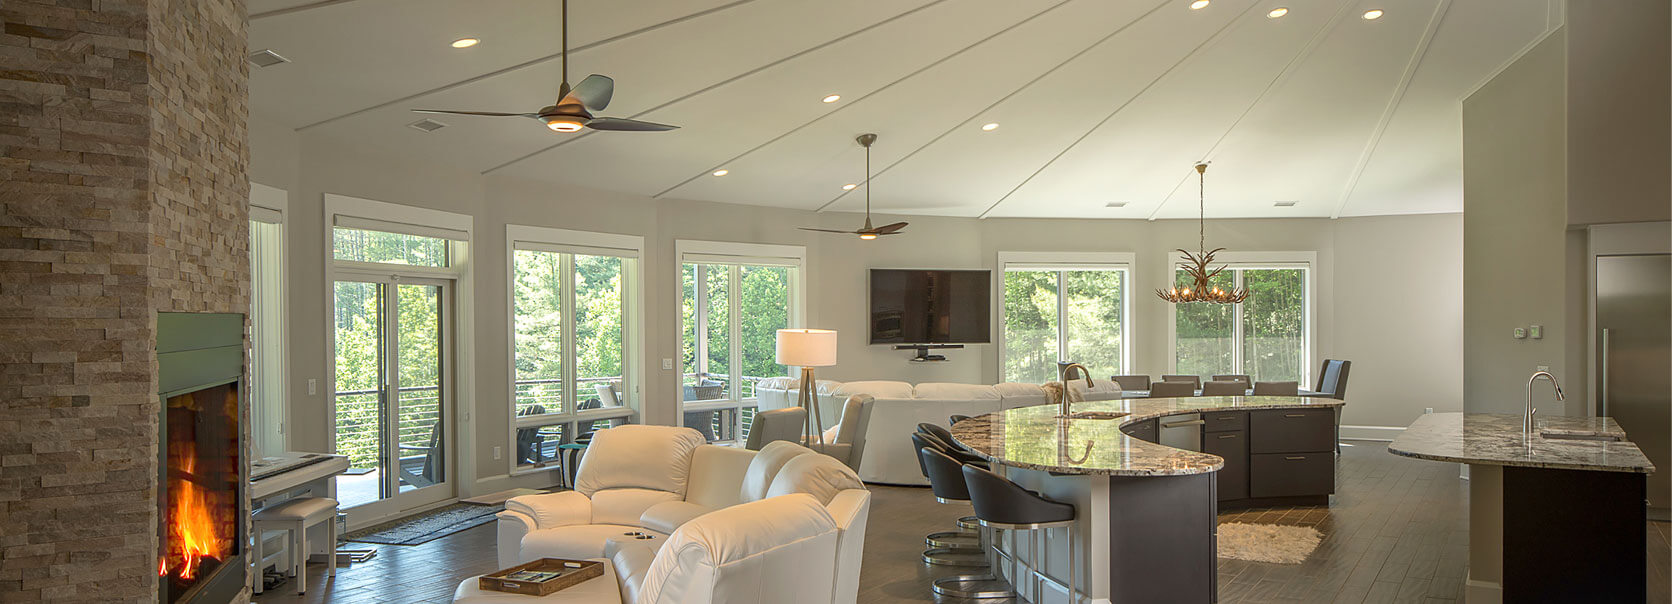 whole-home-remodel-sineath-construction